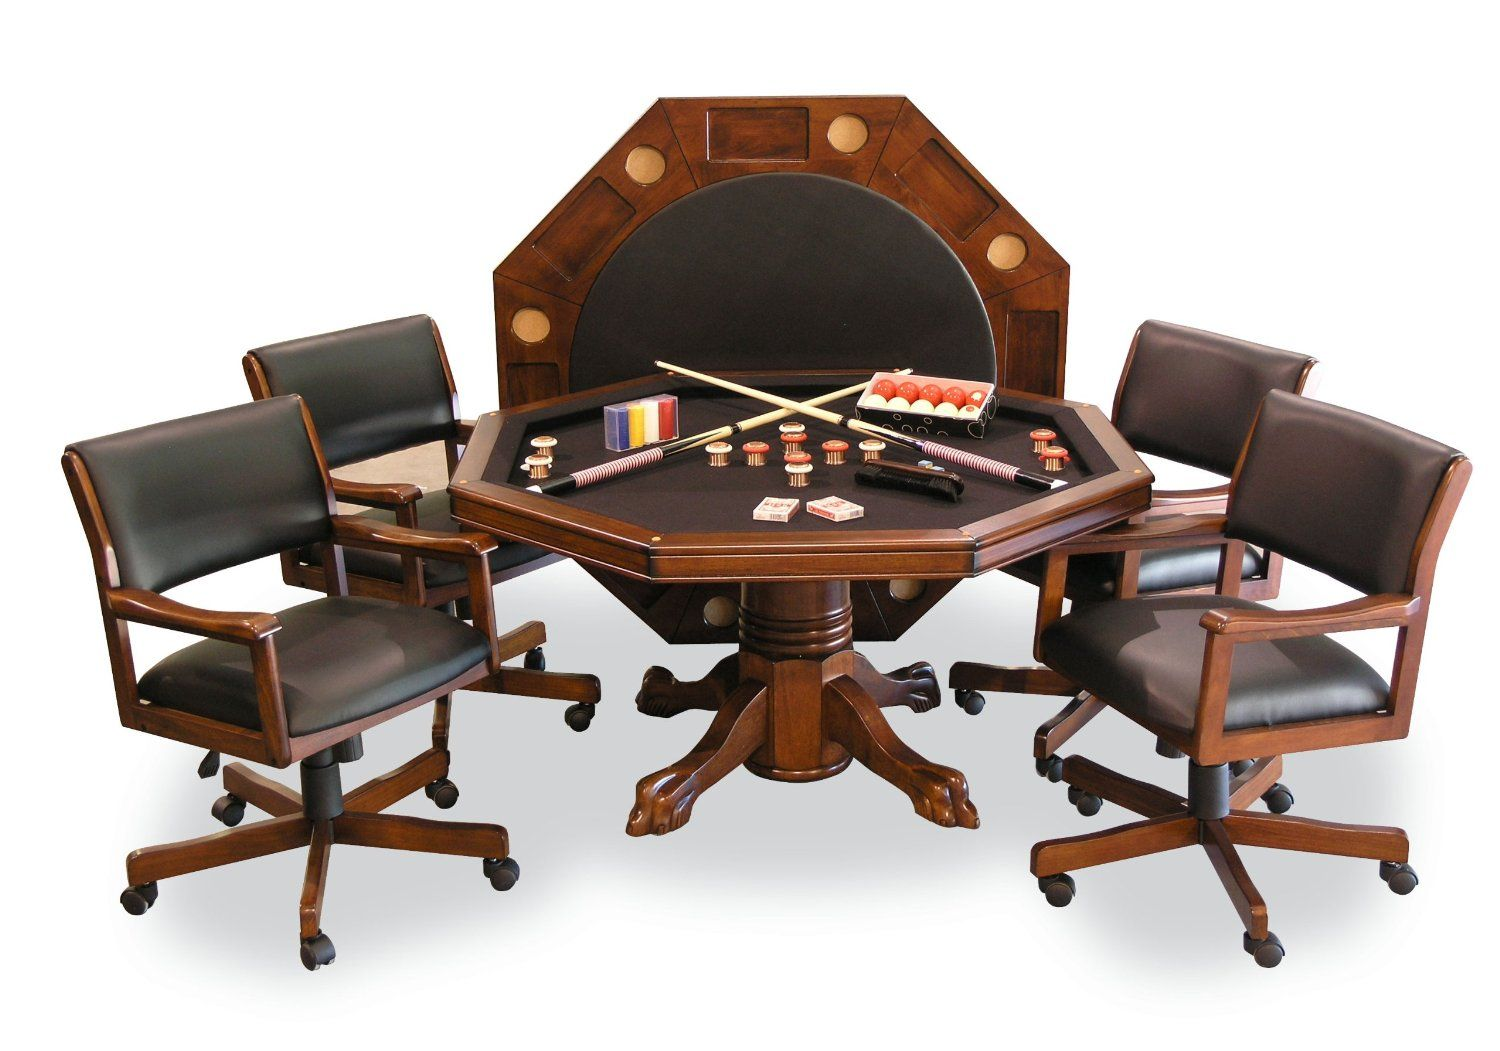 Signature Combination Game Table Set W/ 4 Chairs   Chestnut   Bumper Pool /  Poker And Game Play Tables   A Complete Family U0026 Friends Fun Experience!